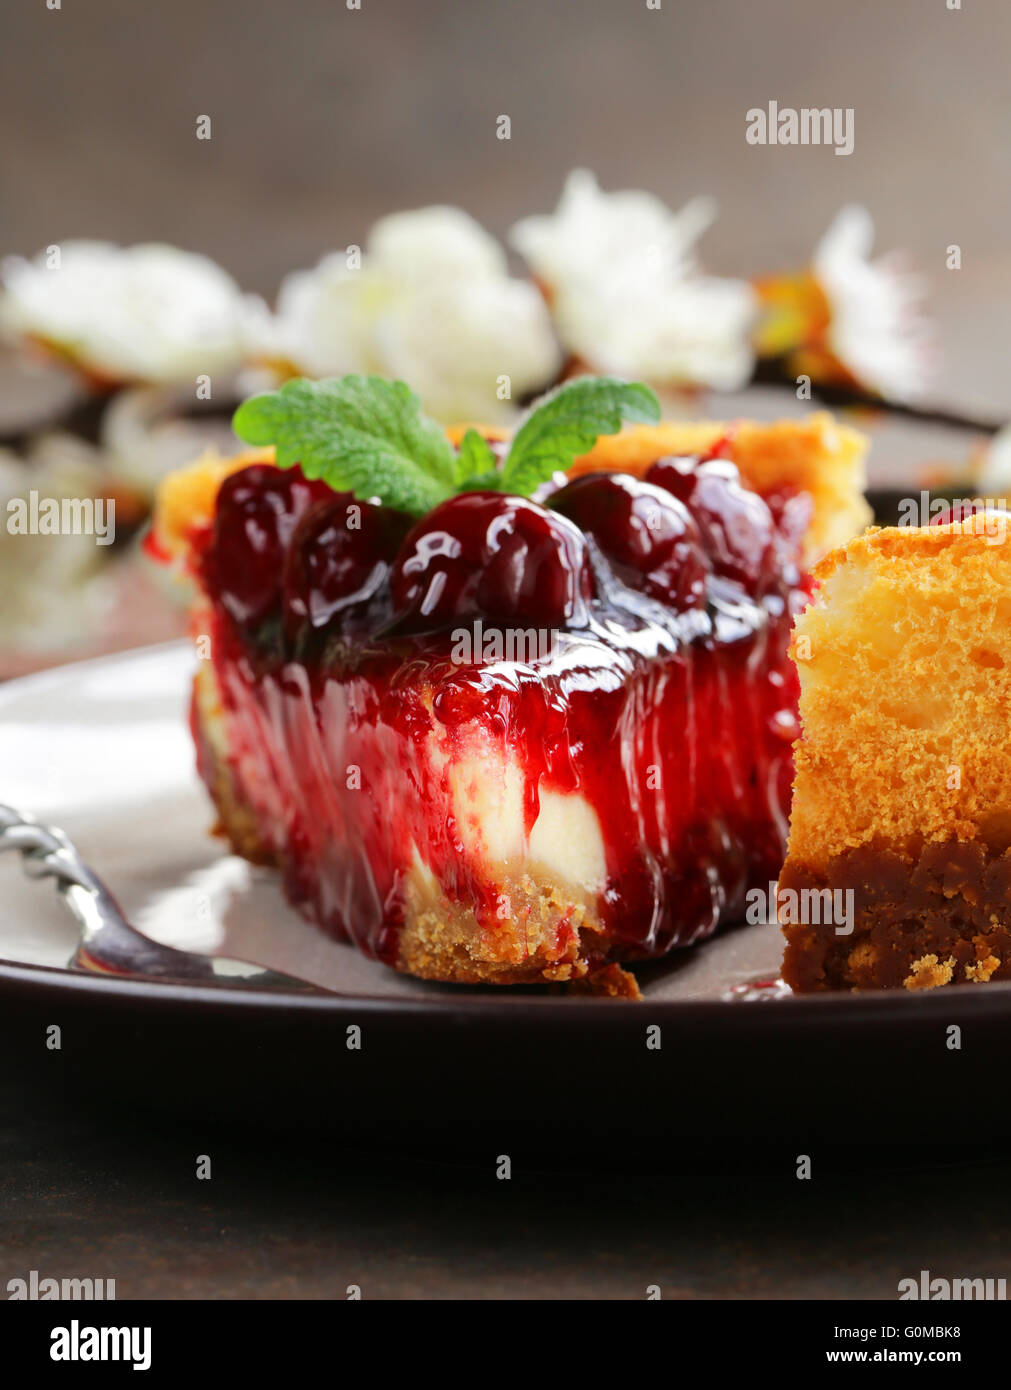 piece of cherry cheesecake and leaves of fresh mint - Stock Image